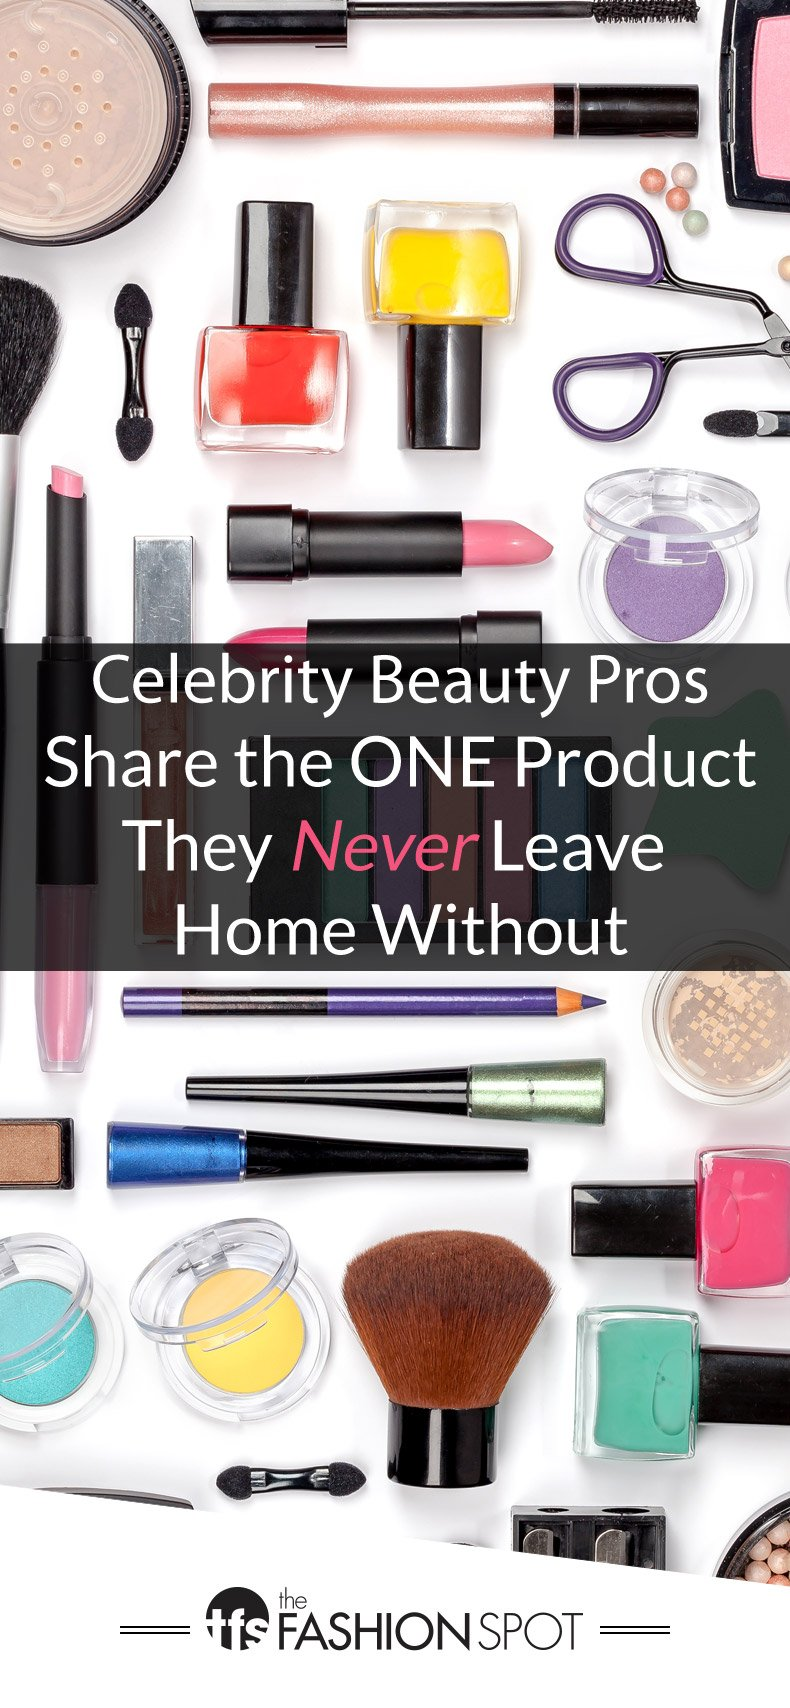 20 Celebrity Hair and Makeup Artists Share the ONE Product They Never Leave Home Without